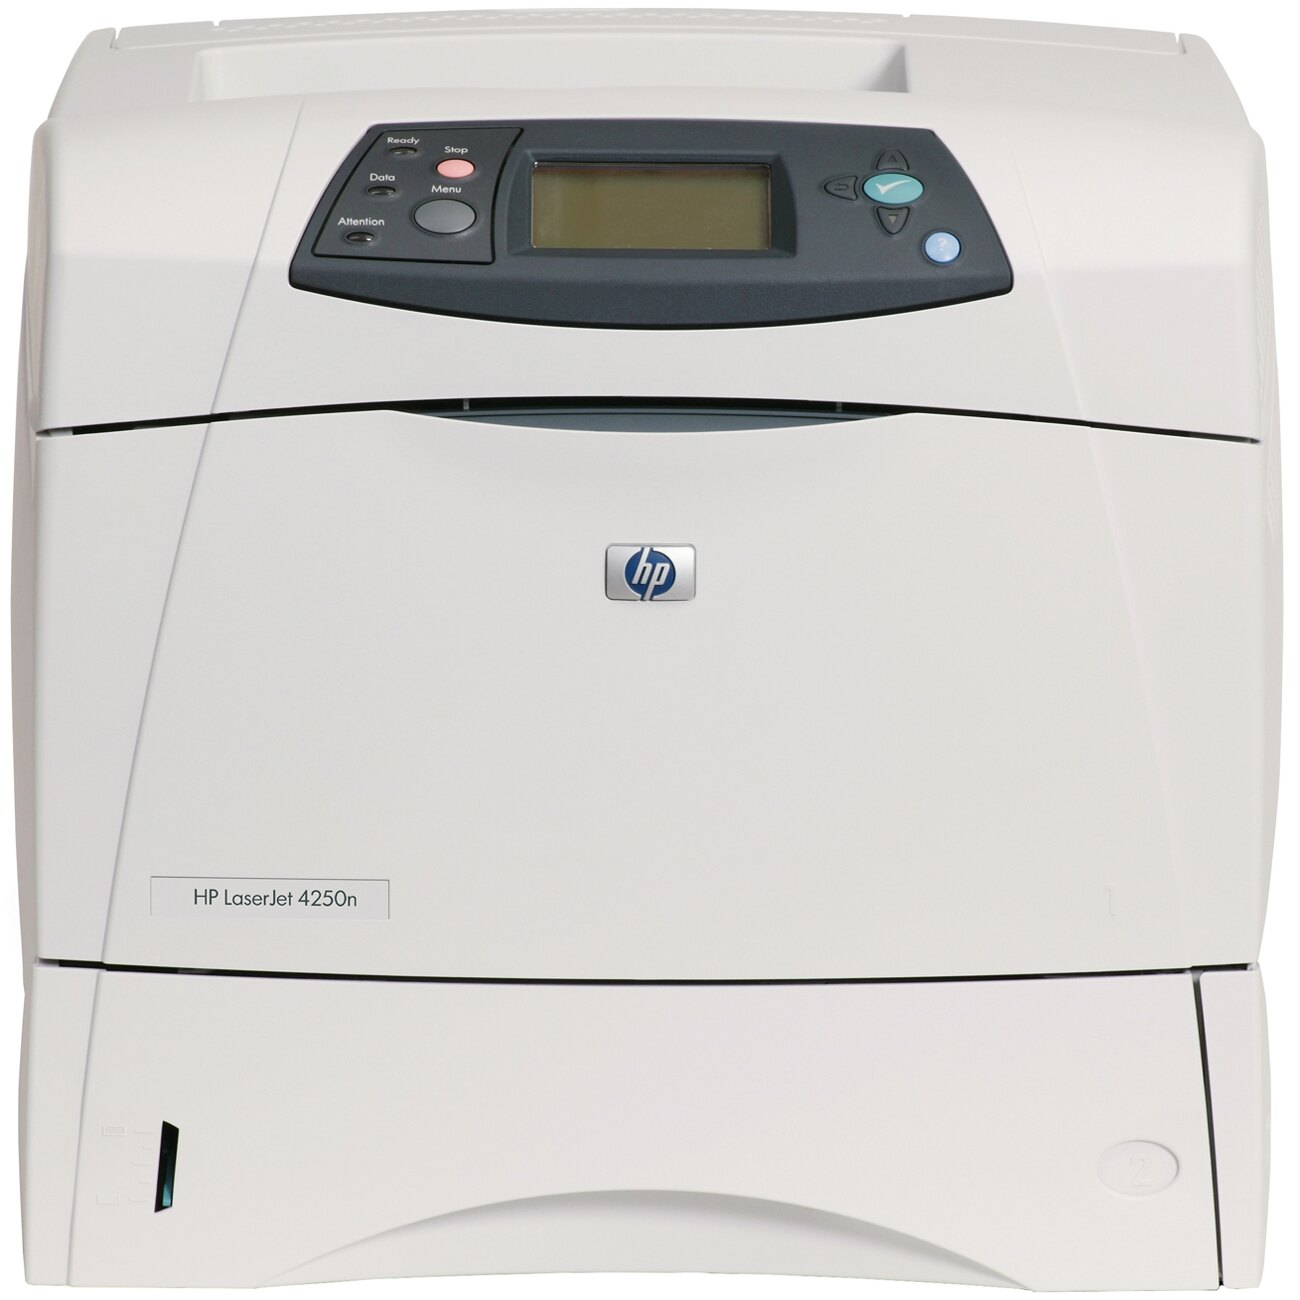 88printers hp laserjet 4250n laser printer monochrome 1200 x rh rakuten com hp laserjet 1200 series manual hp laserjet 1200 maintenance manual